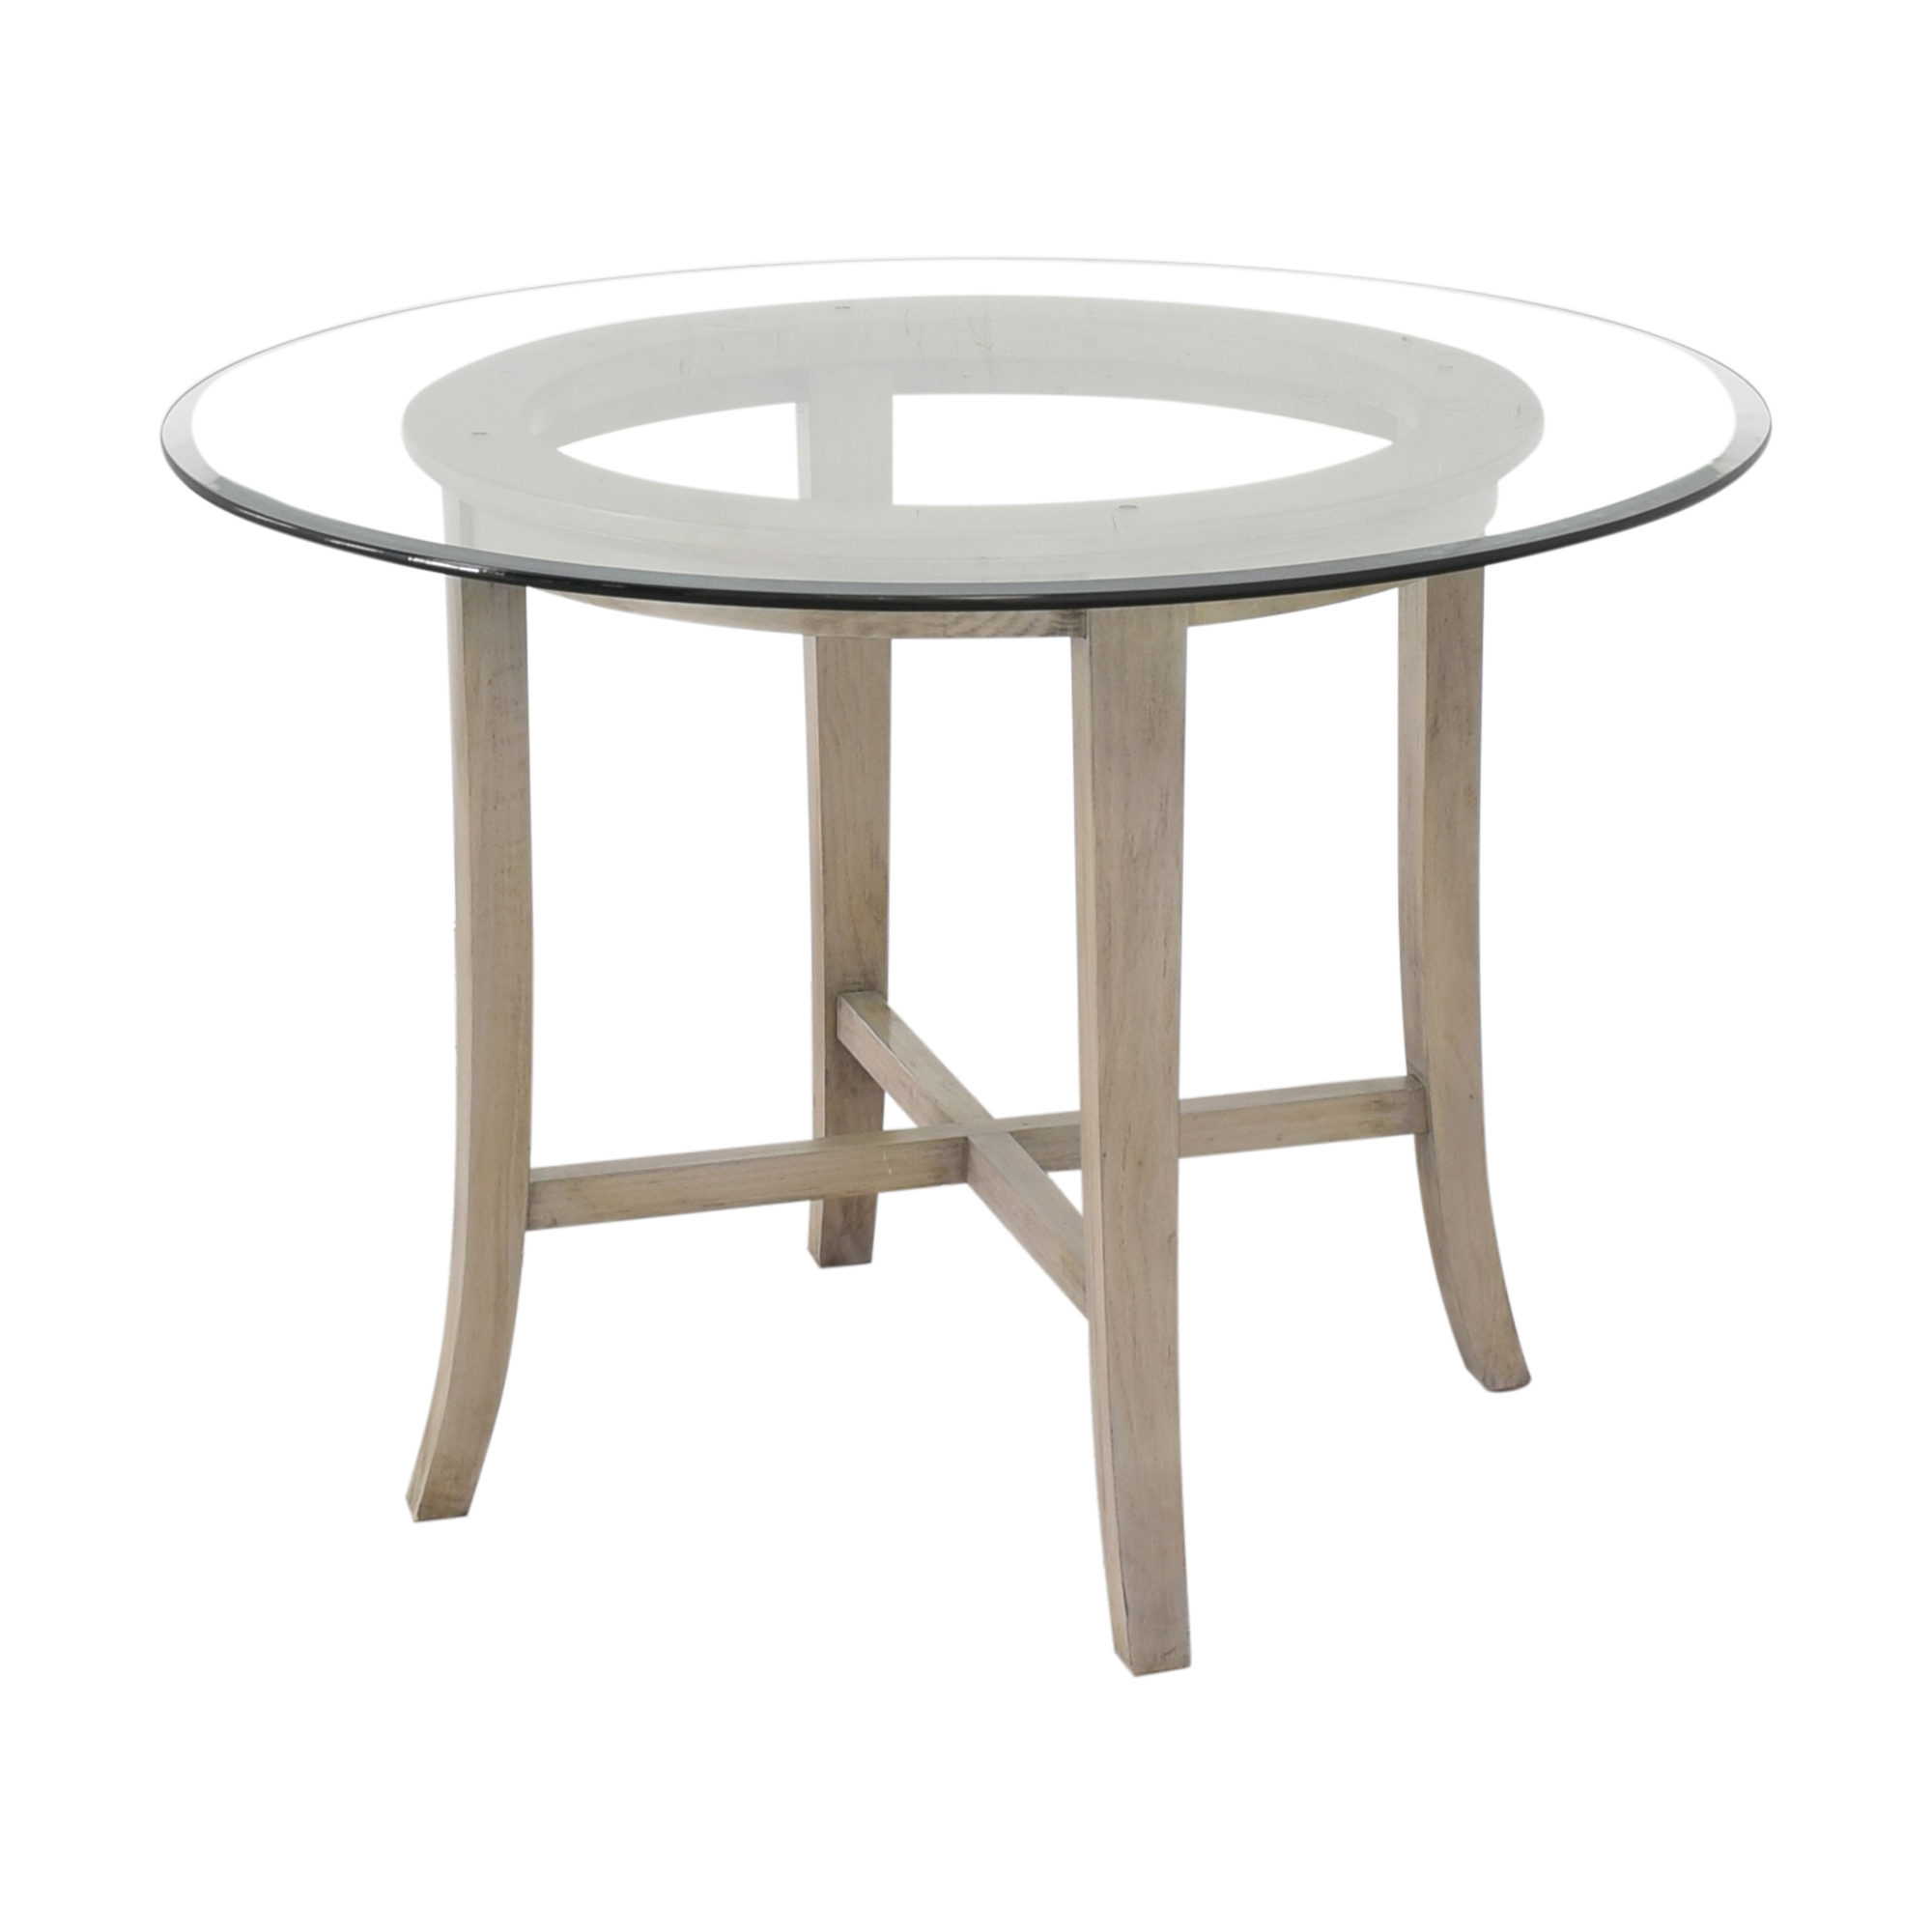 buy Crate & Barrel Halo Grey Round Dining Table with Glass Top Crate & Barrel